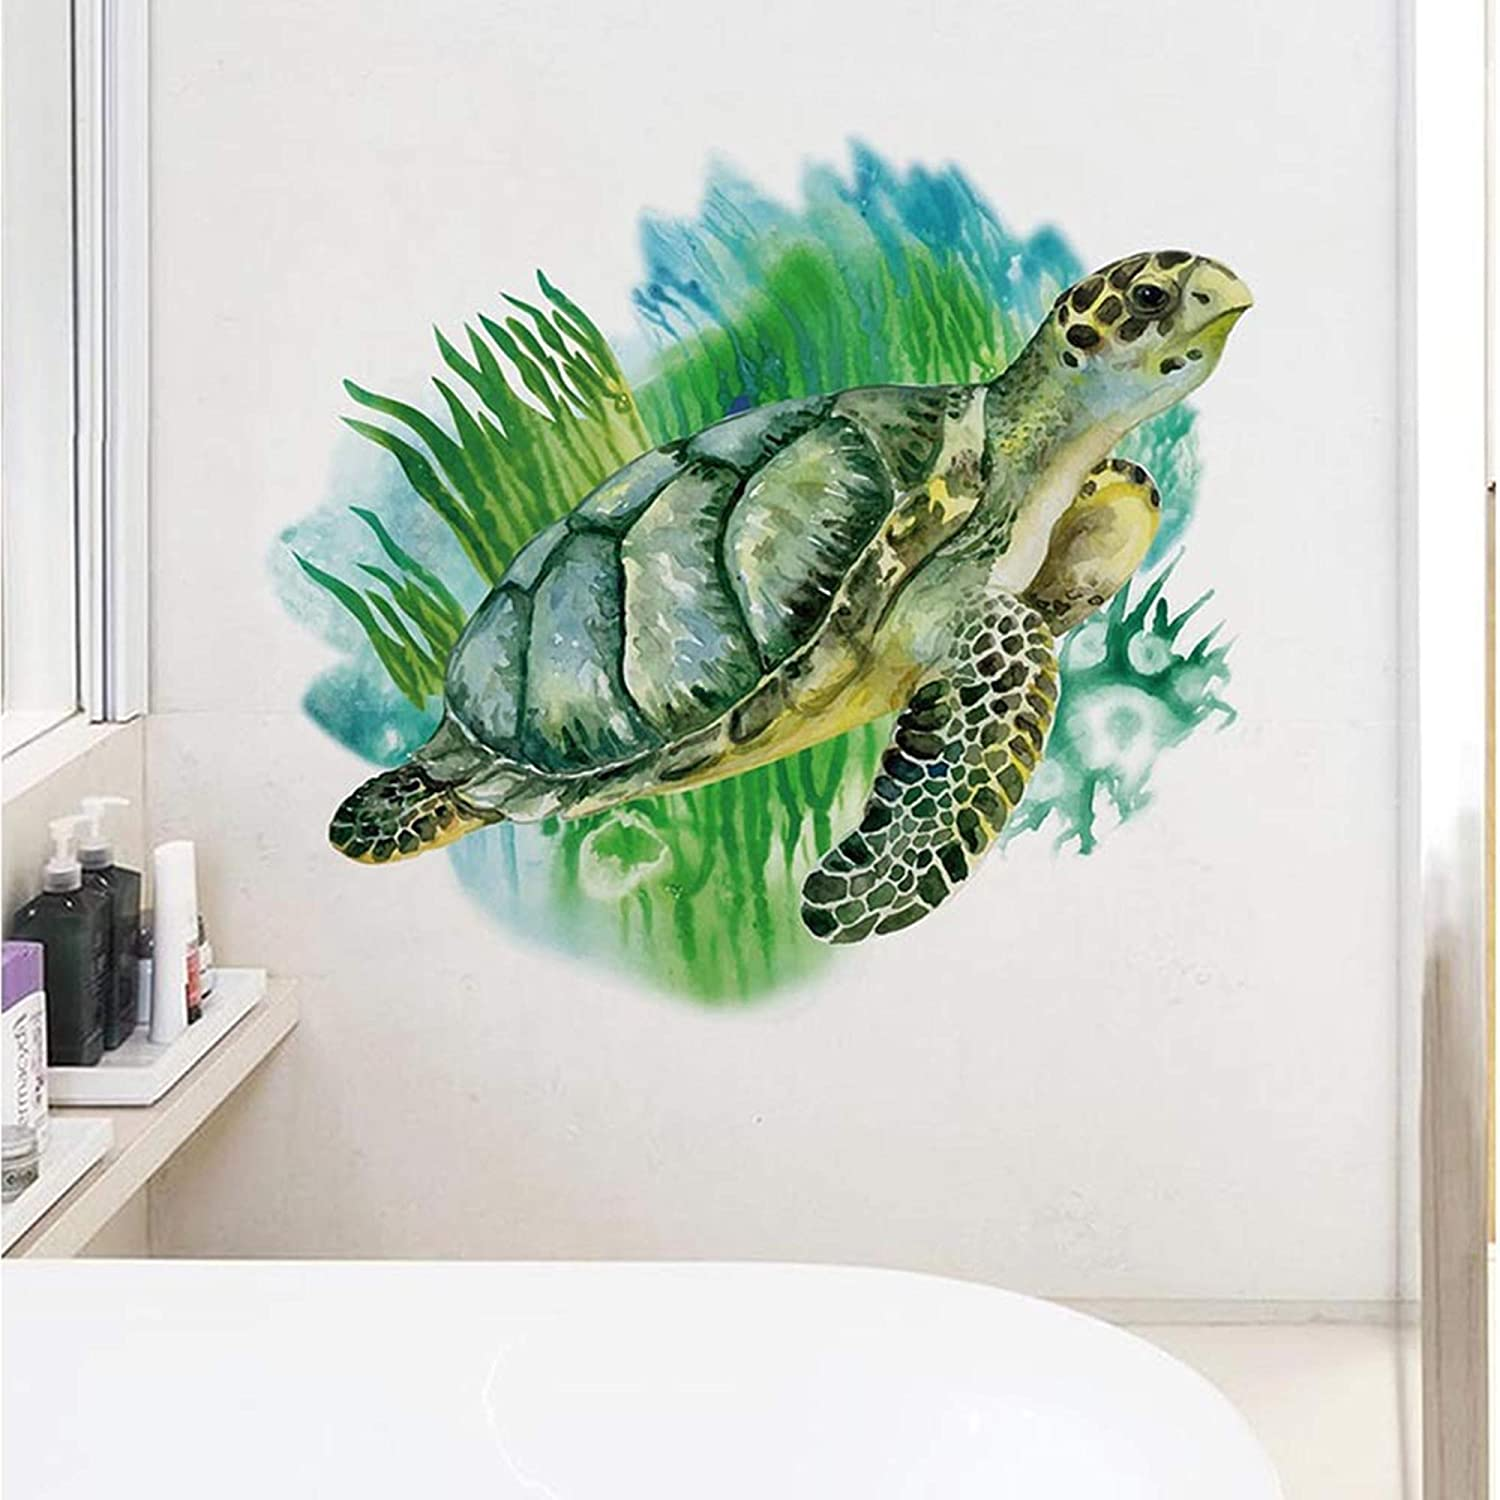 ROFARSO Lifelike Lovely Cute Green Sea Turtle Animal 3D Vinyl Wall Stickers Removable Wall Decals Art Decorations Decor for Nursery Baby Bedroom Playroom Living Room Murals